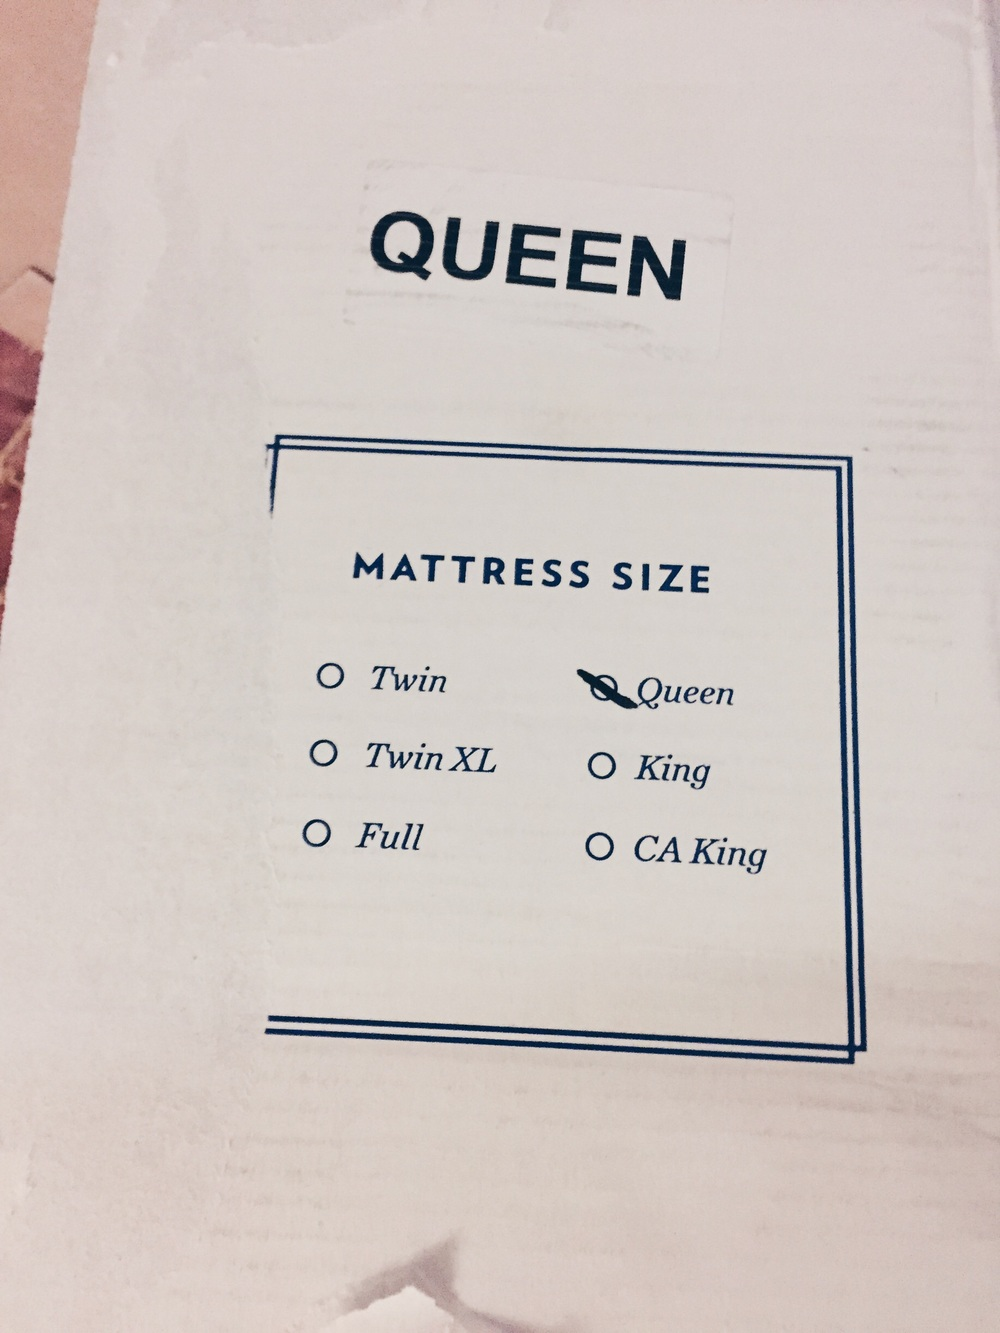 100 casper queen mattress best pillow for side sleepers